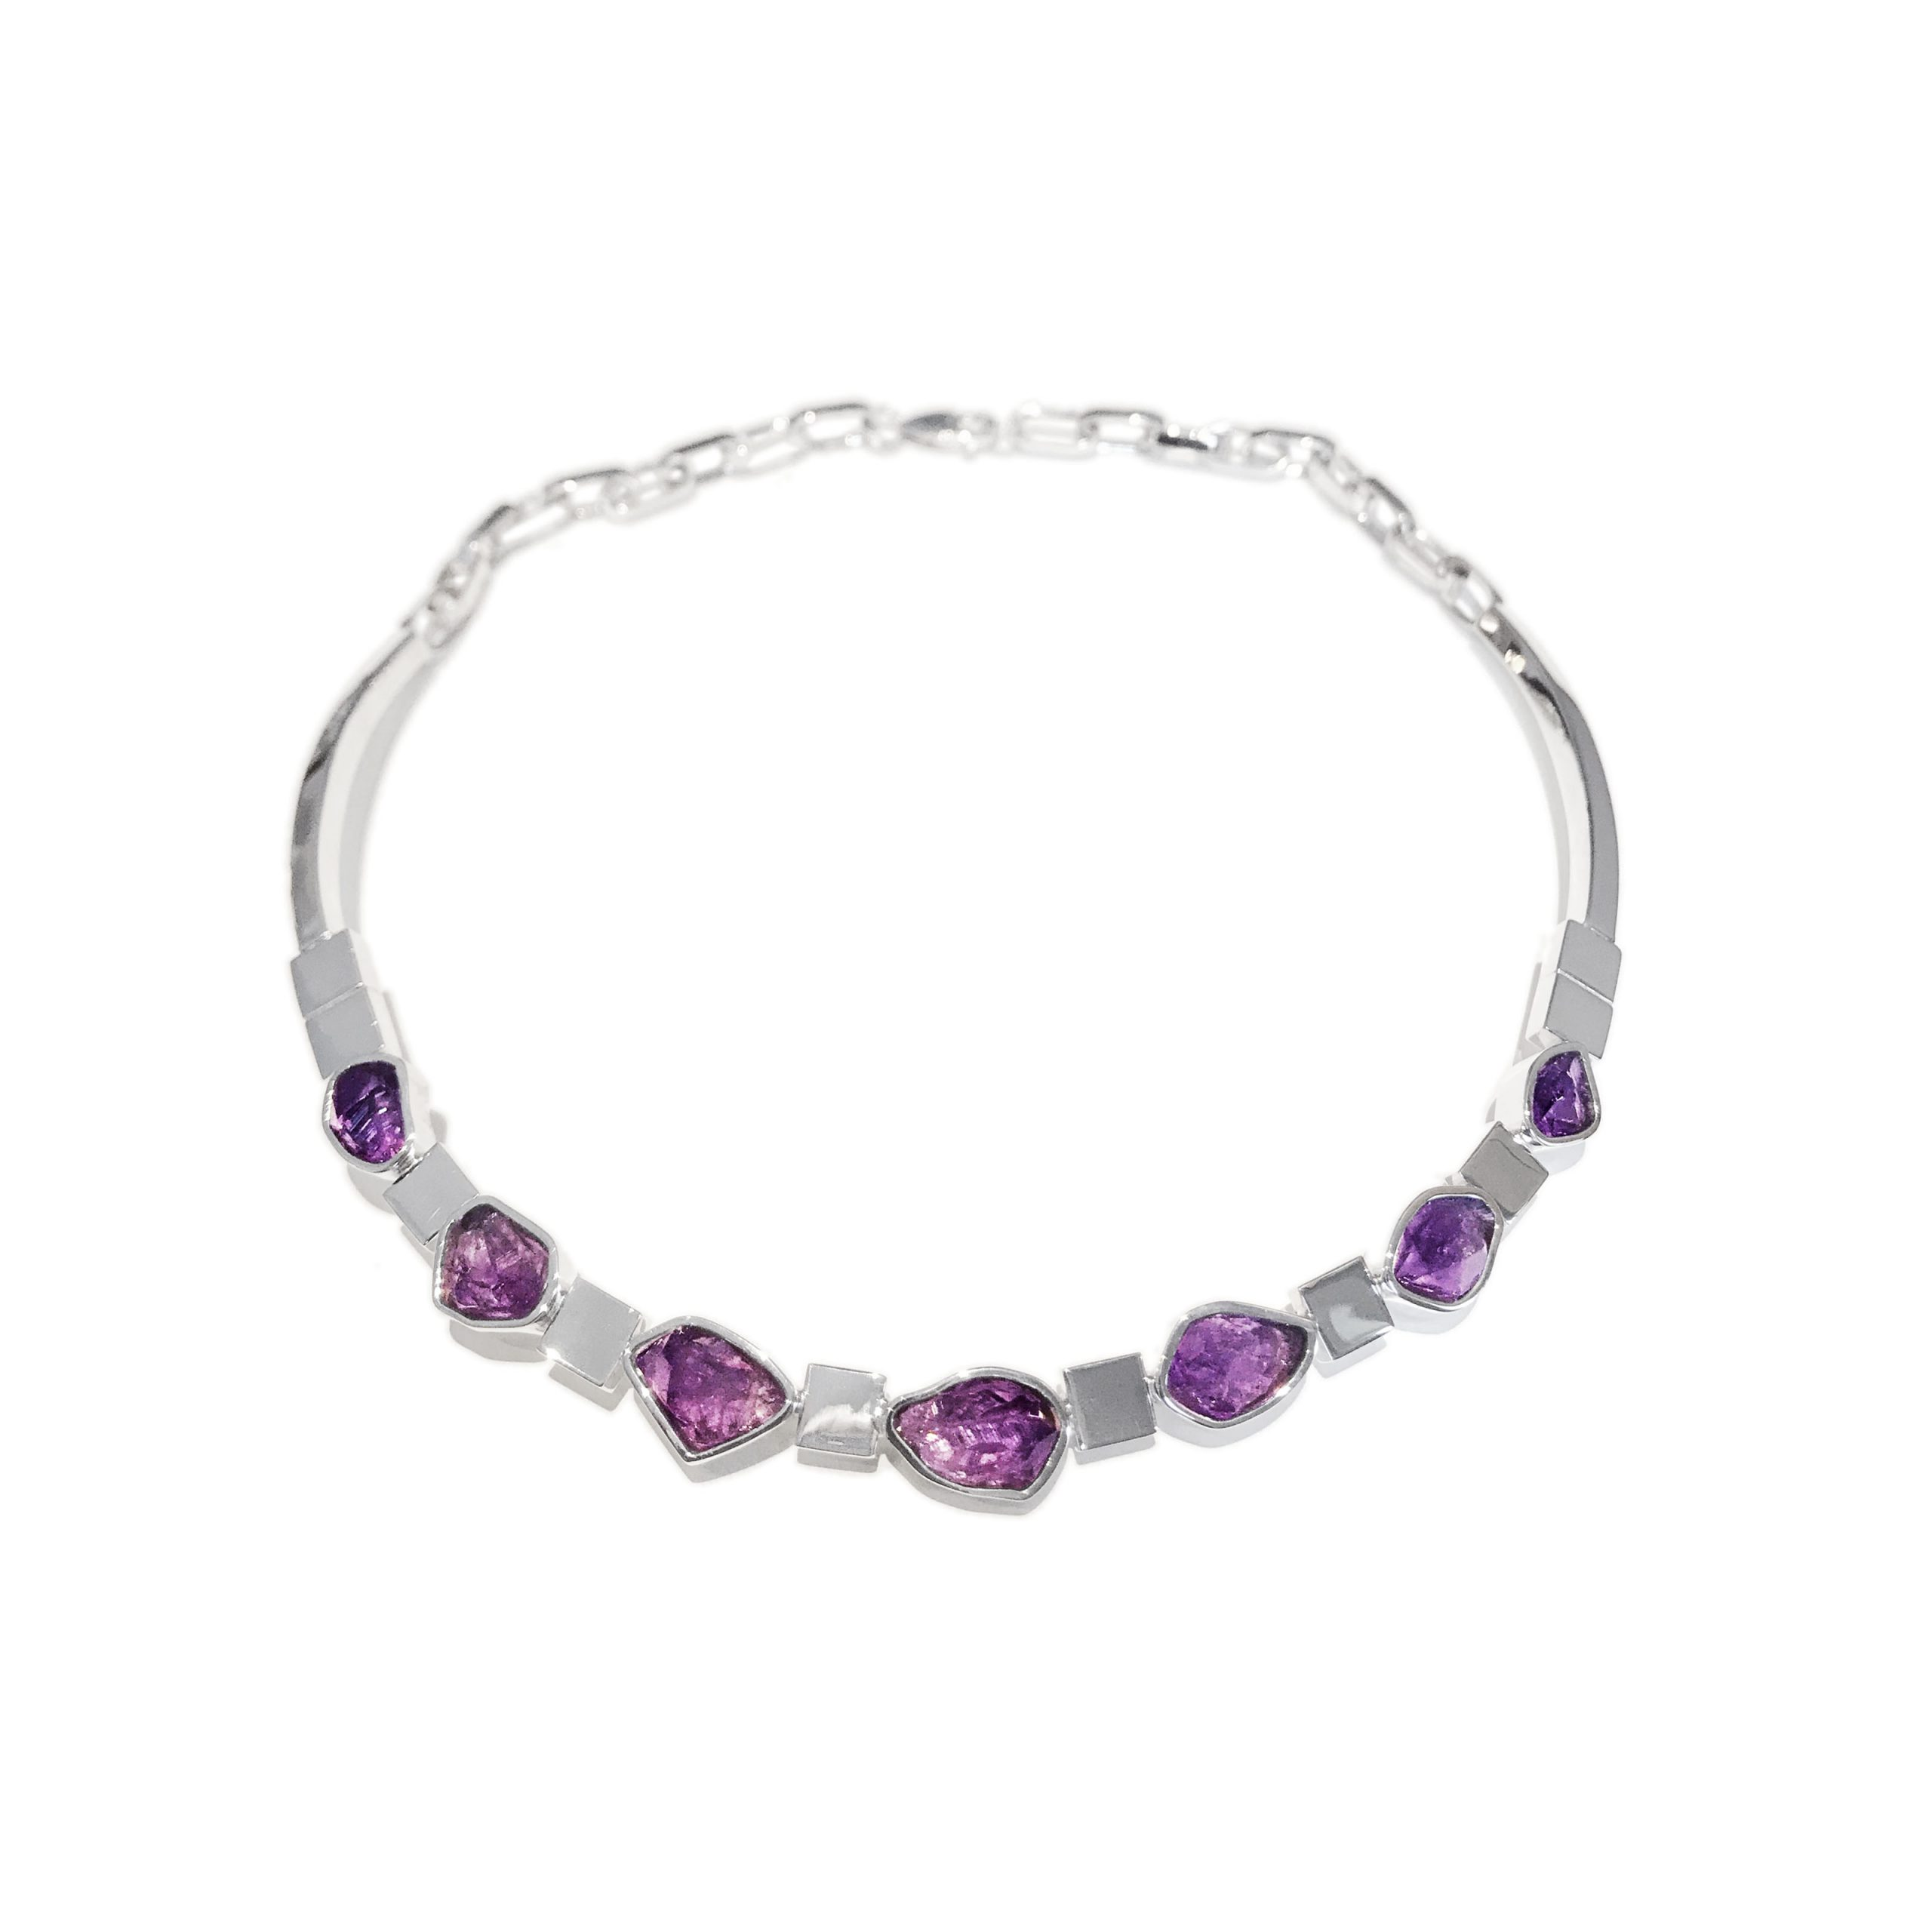 sterling silver rough raw cut amethyst bespoke necklace collar best goldsmith uk